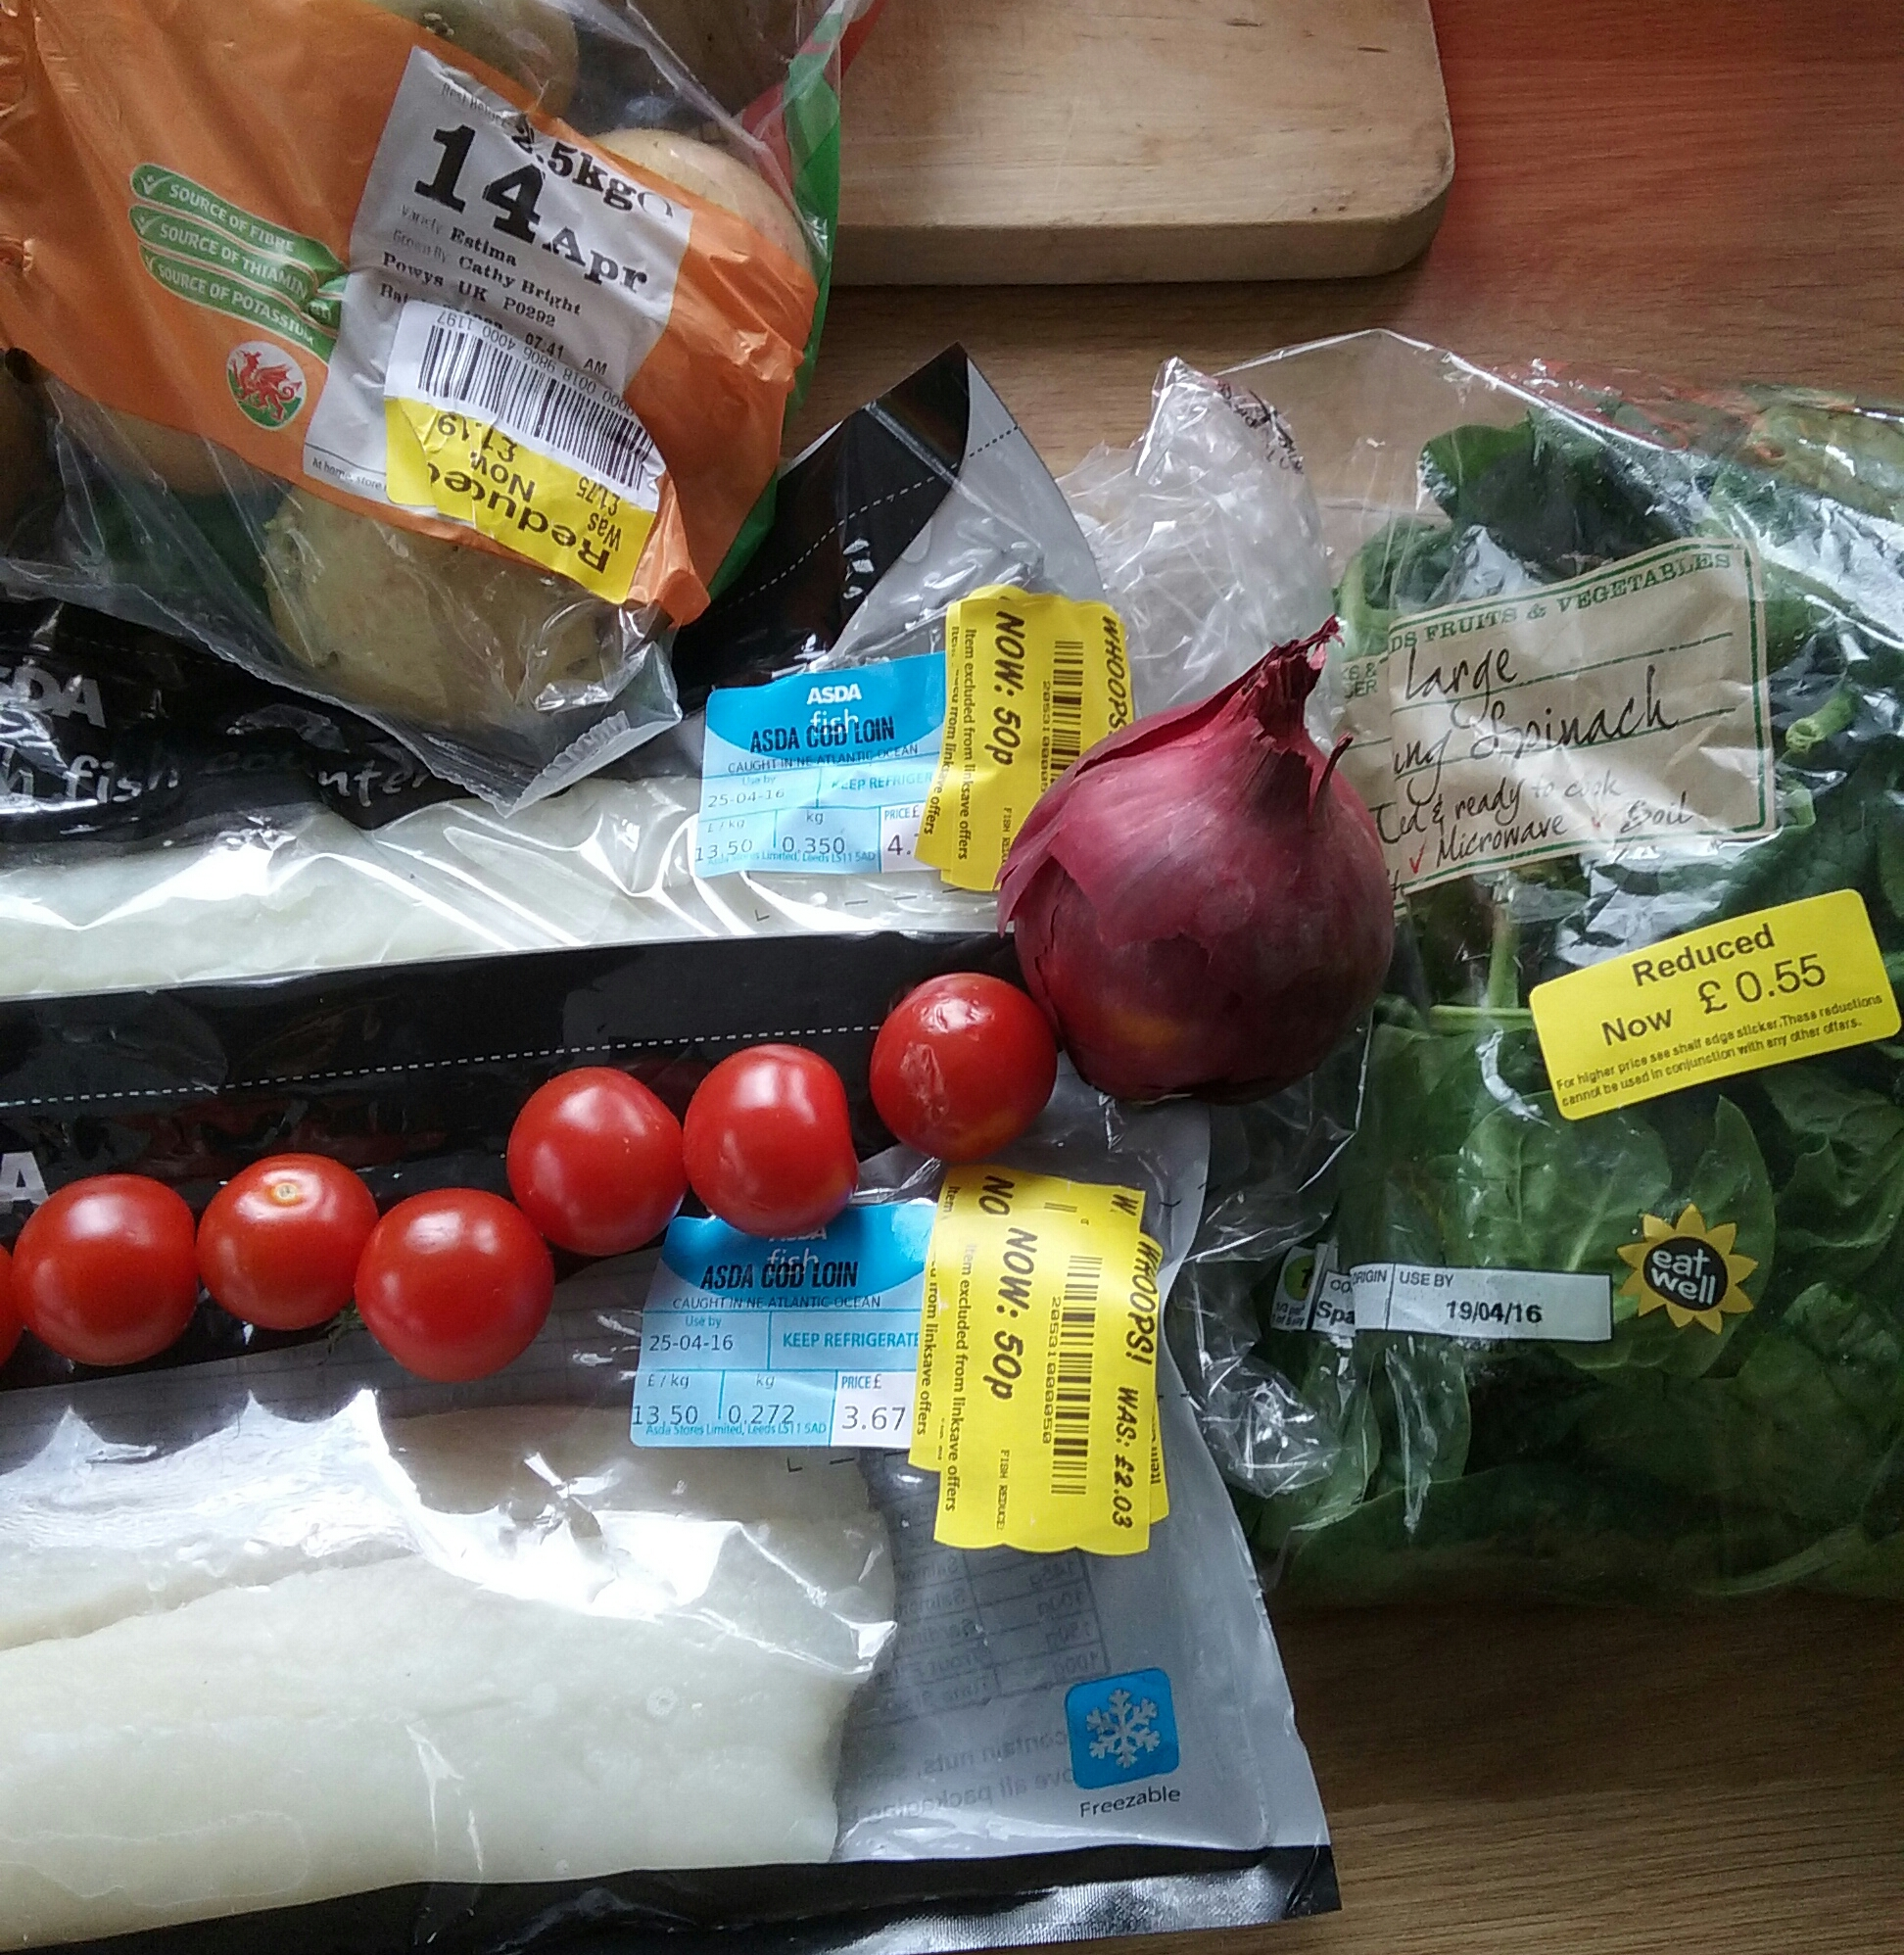 mix of ingredients, potatoes, spinach, tomatoes, red onions and cod (majority with yellow tags).